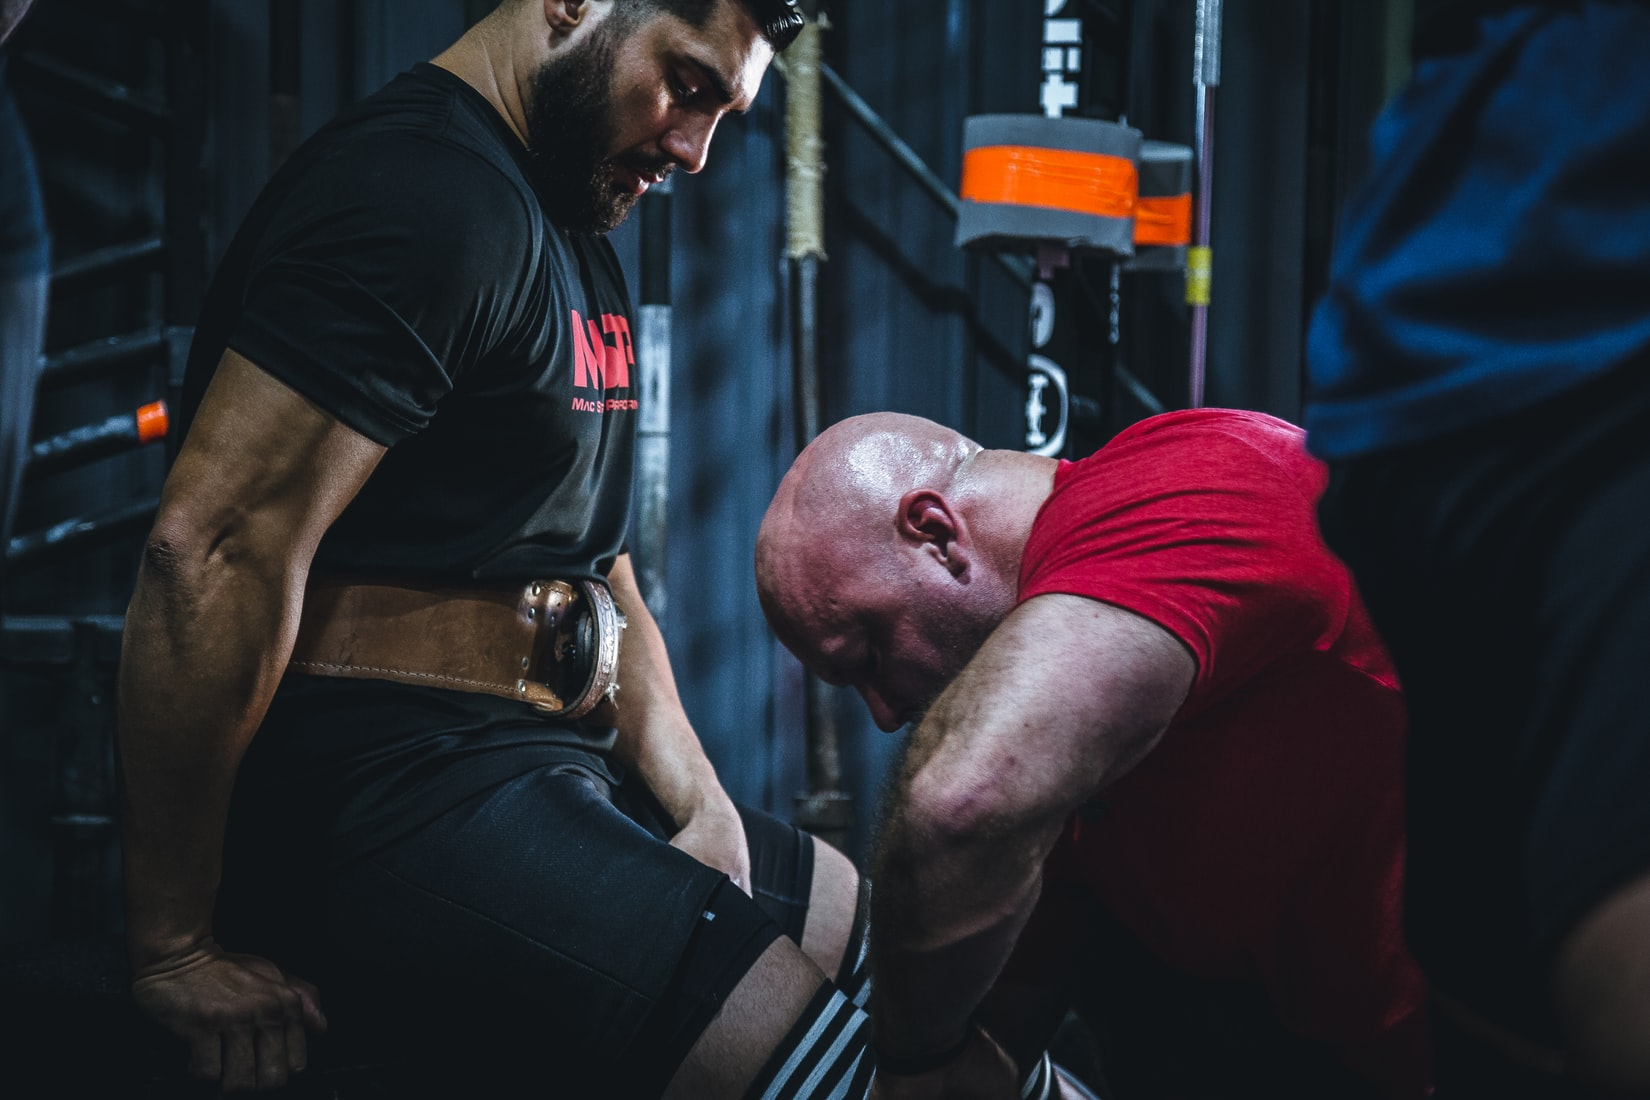 CUSTOM COACHING - Custom Training and RPR ProgramCustom Nutrition and Goal ProgramApp-Based Delivery and TrackingWeekly Check-In and Video AnalysisPrivate Facebook GroupEducational Content